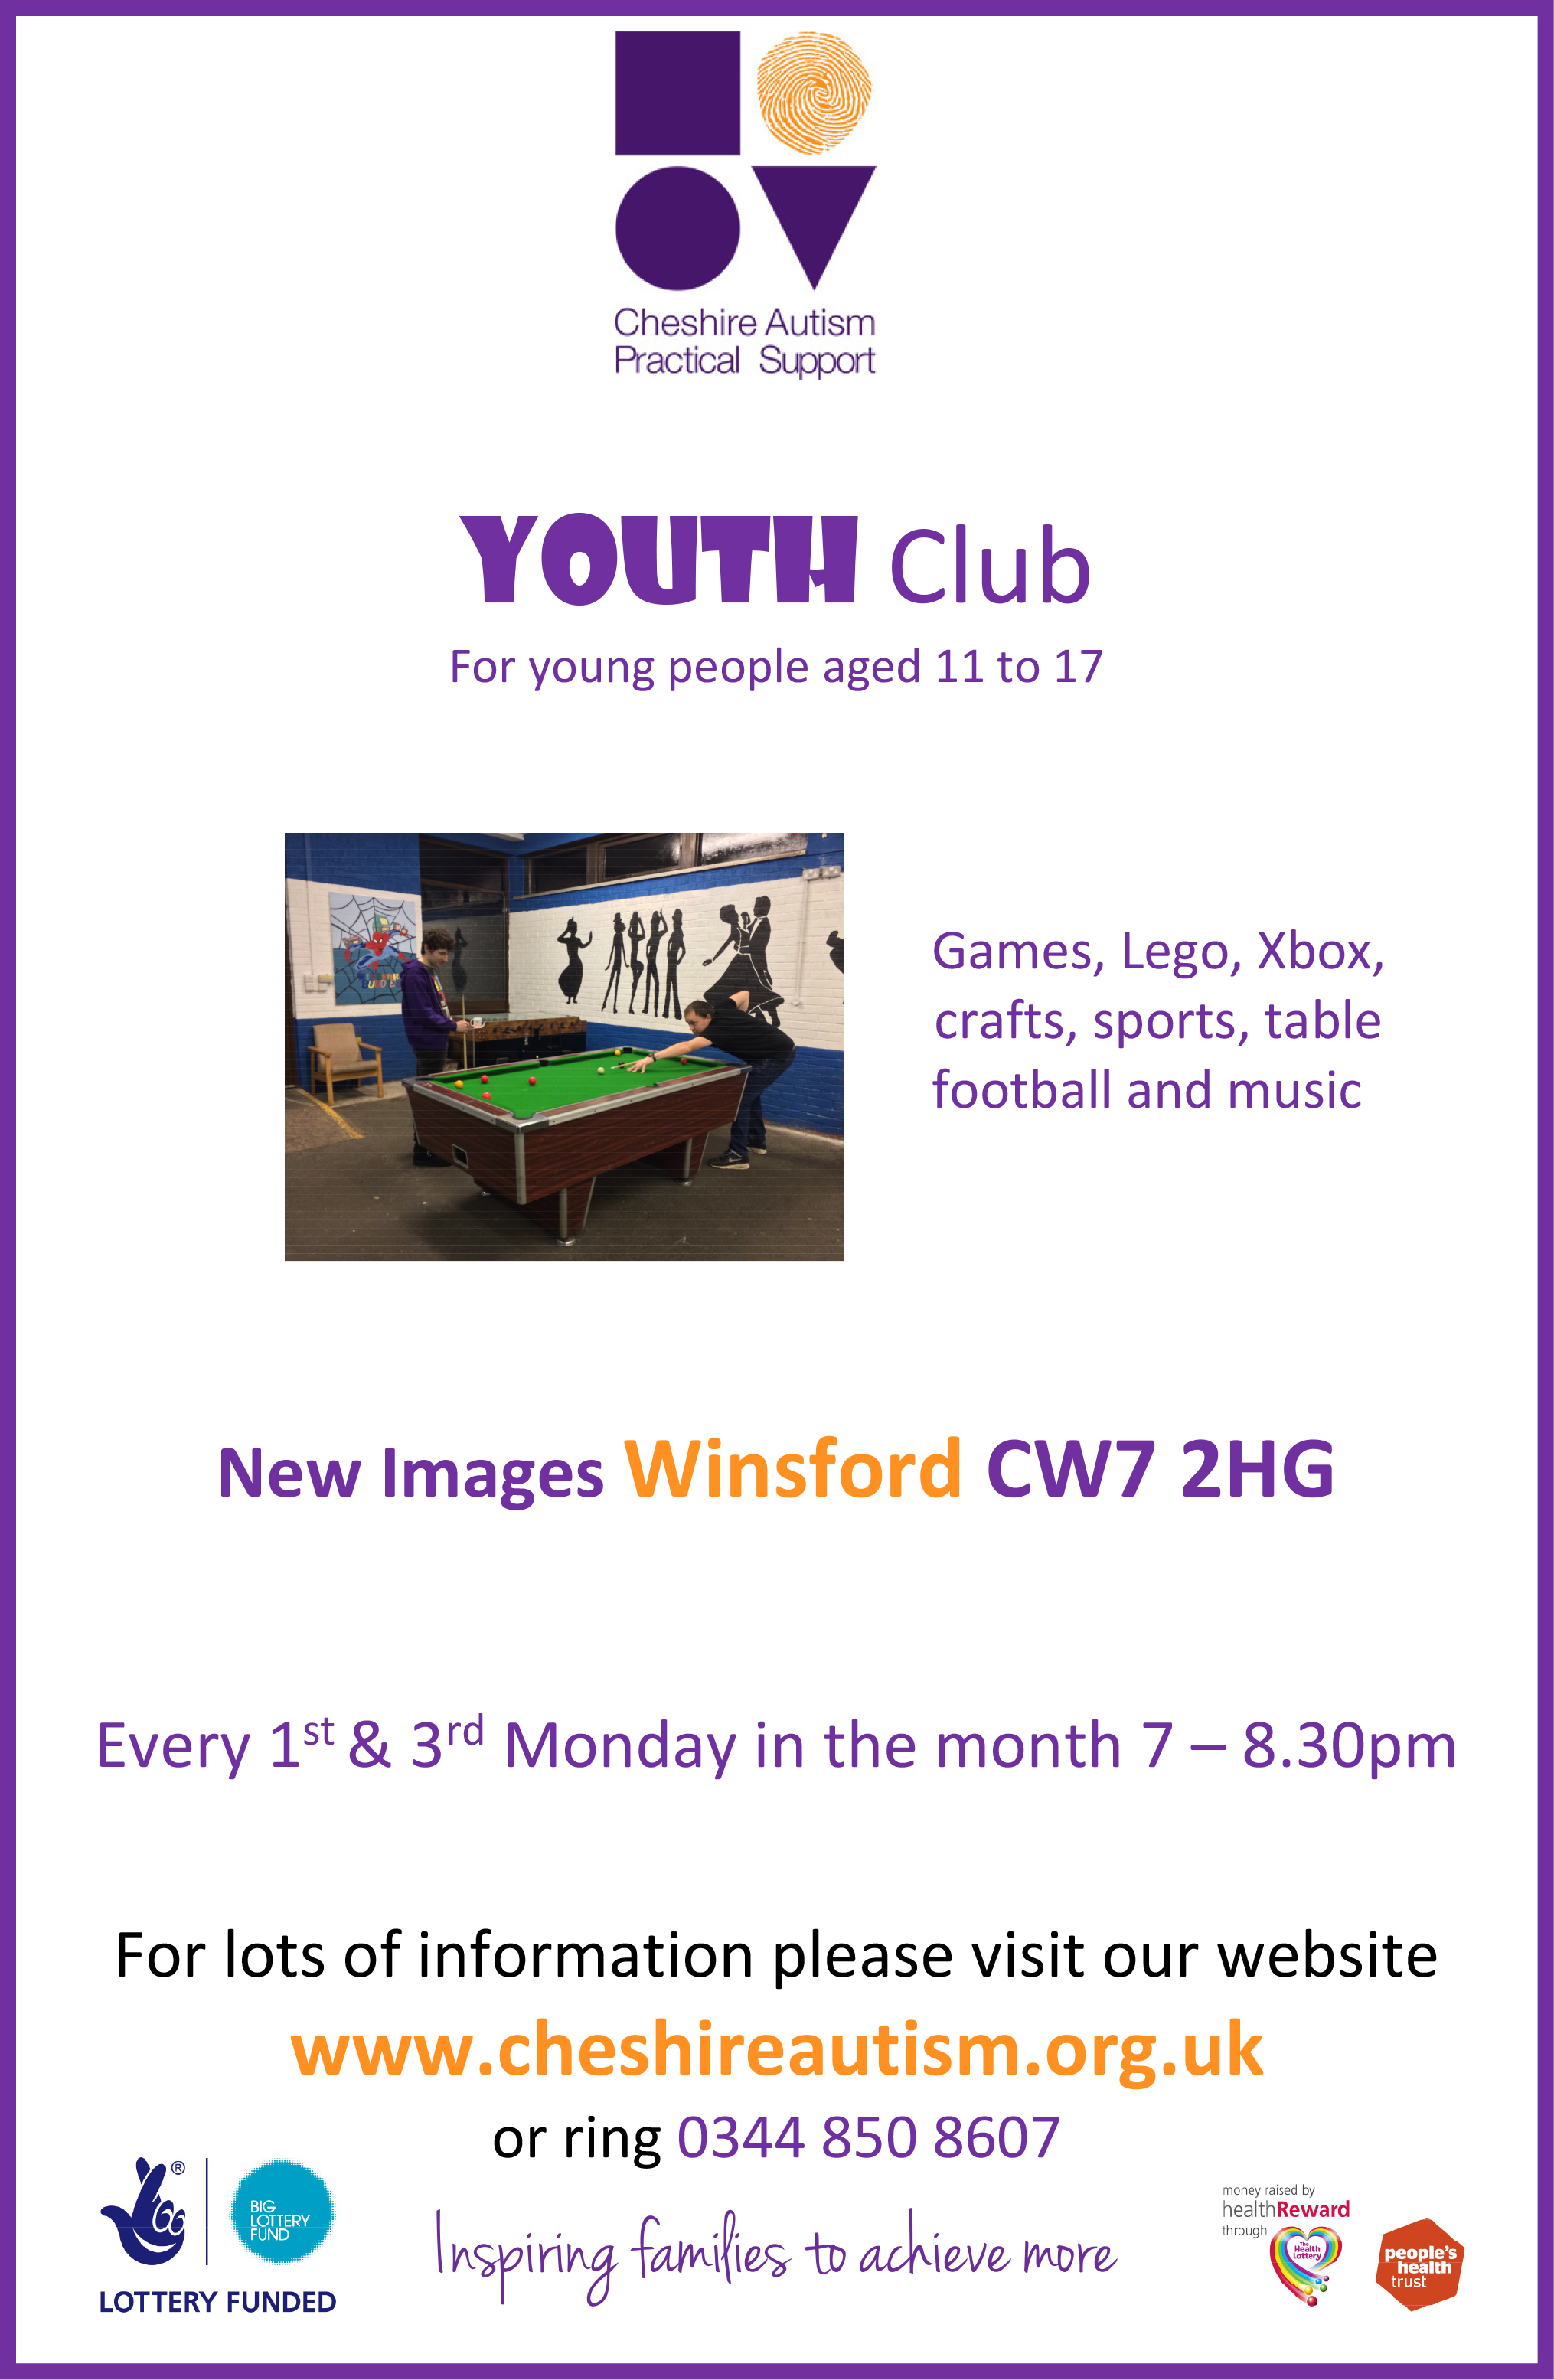 Microsoft Word - Youth Club Winsford A4